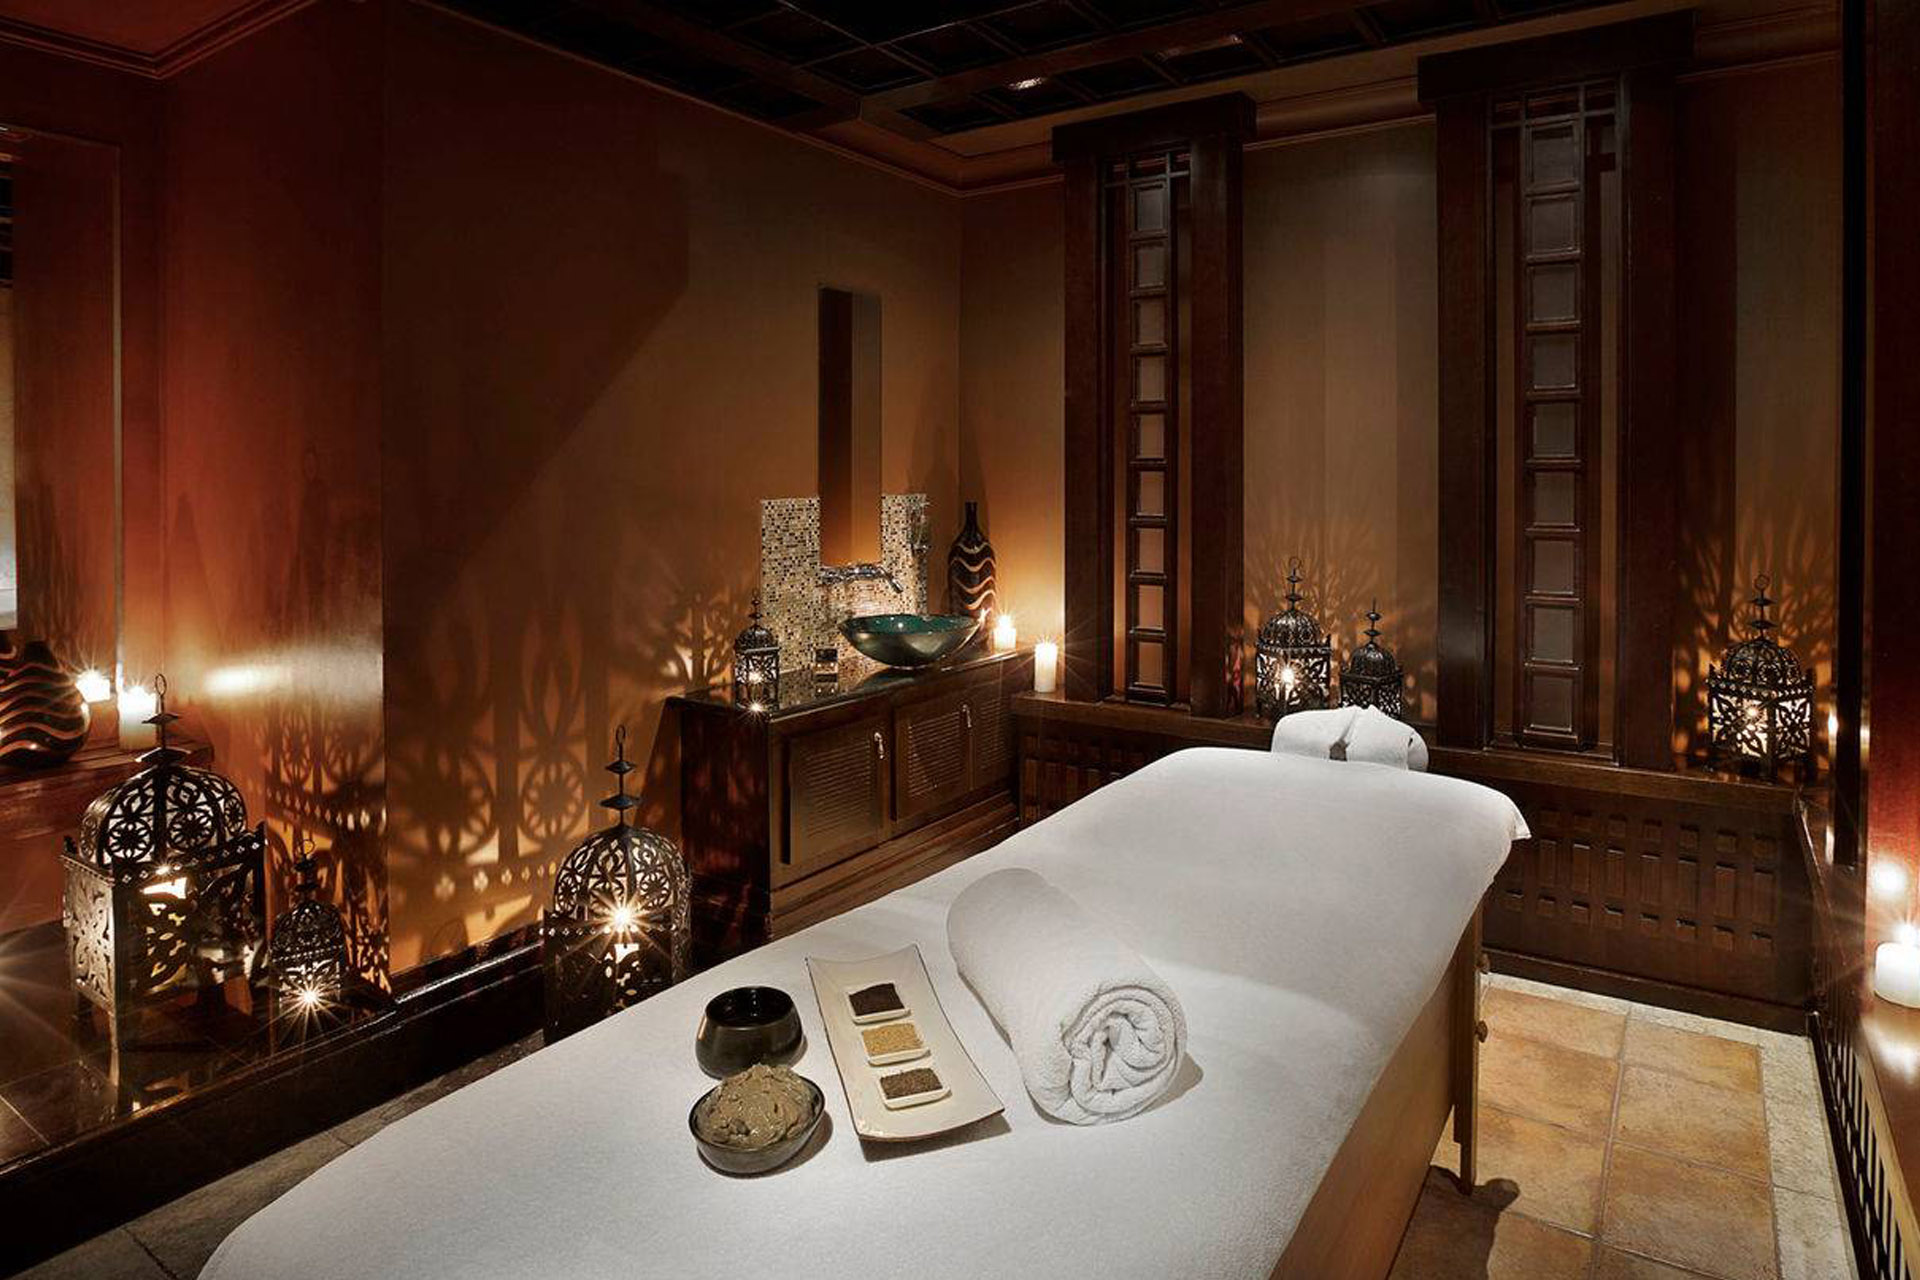 Habtoor elixir Massage in Dubai